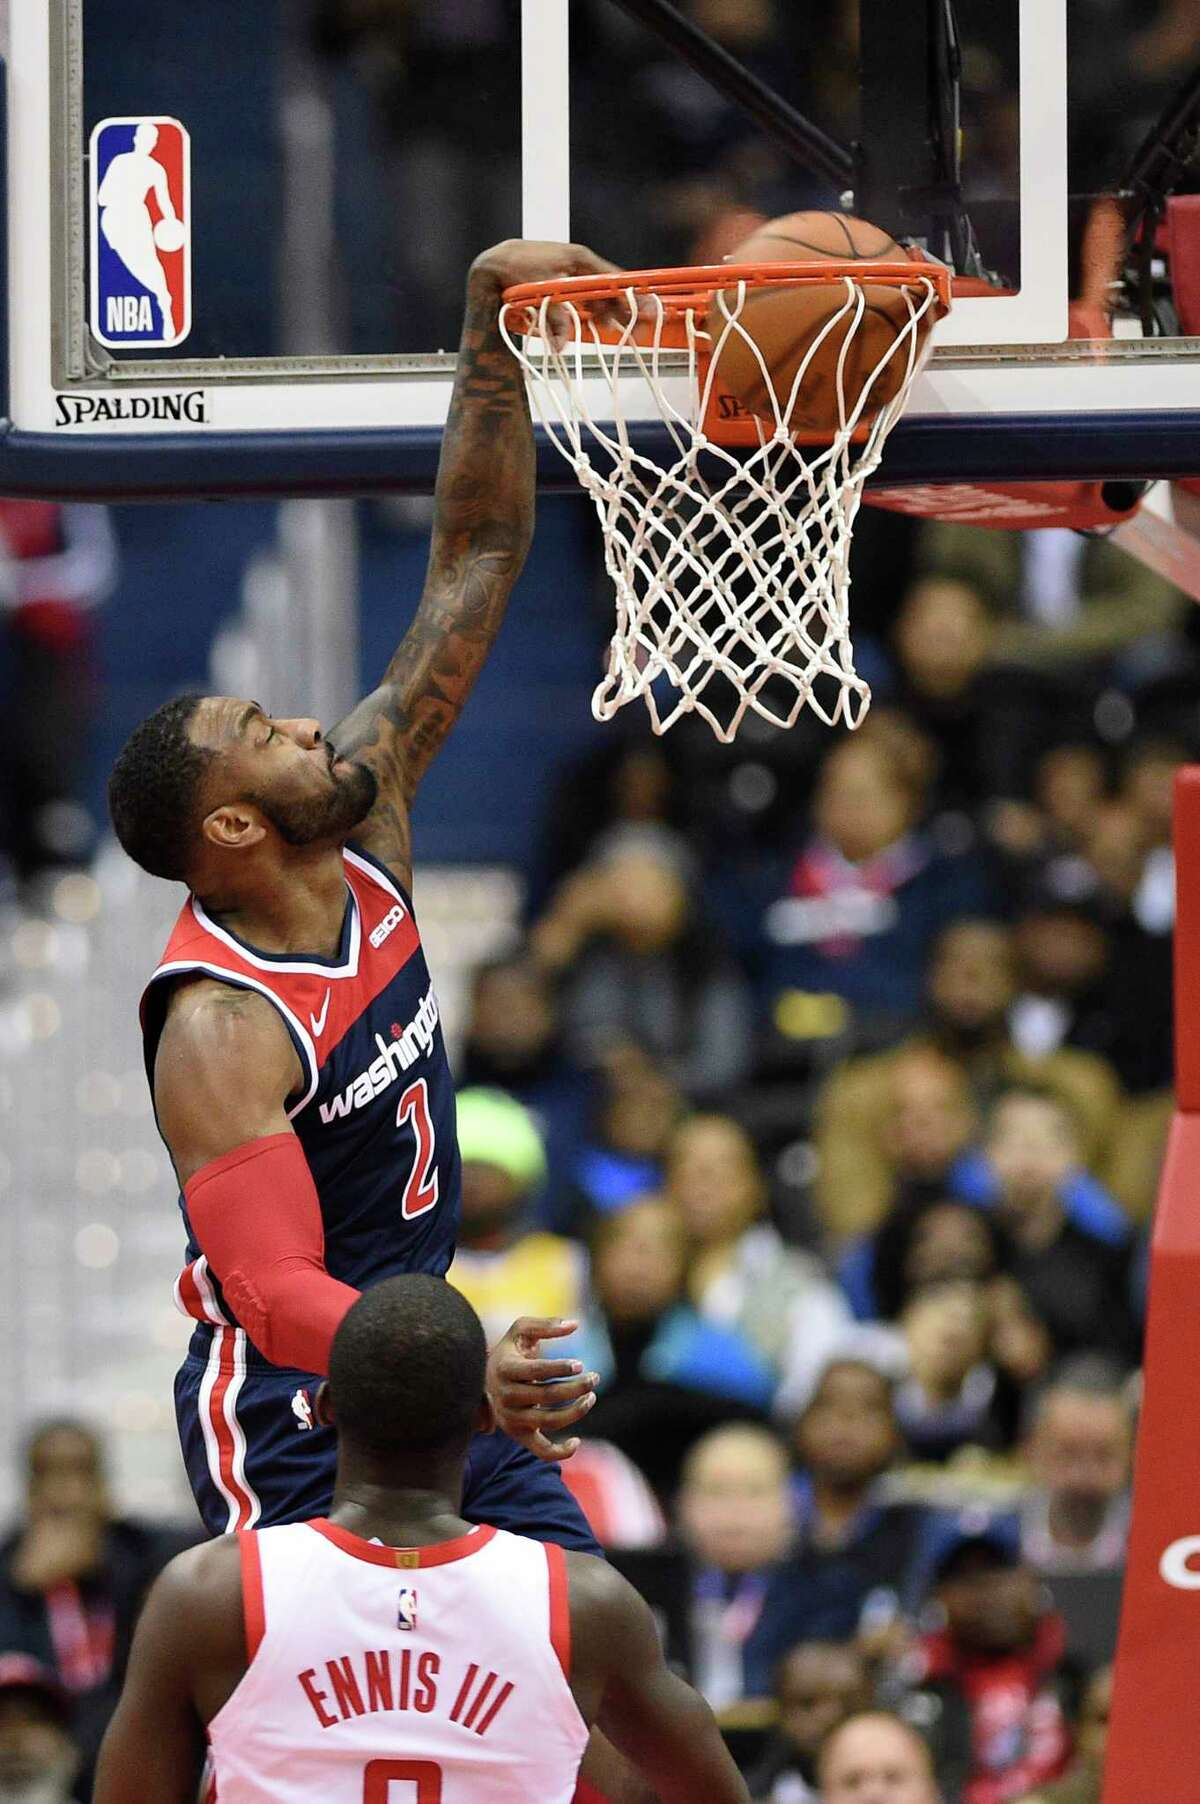 Washington Wizards guard John Wall (2) dunks against Houston Rockets forward James Ennis III (8) during the first half of an NBA basketball game, Monday, Nov. 26, 2018, in Washington. (AP Photo/Nick Wass)